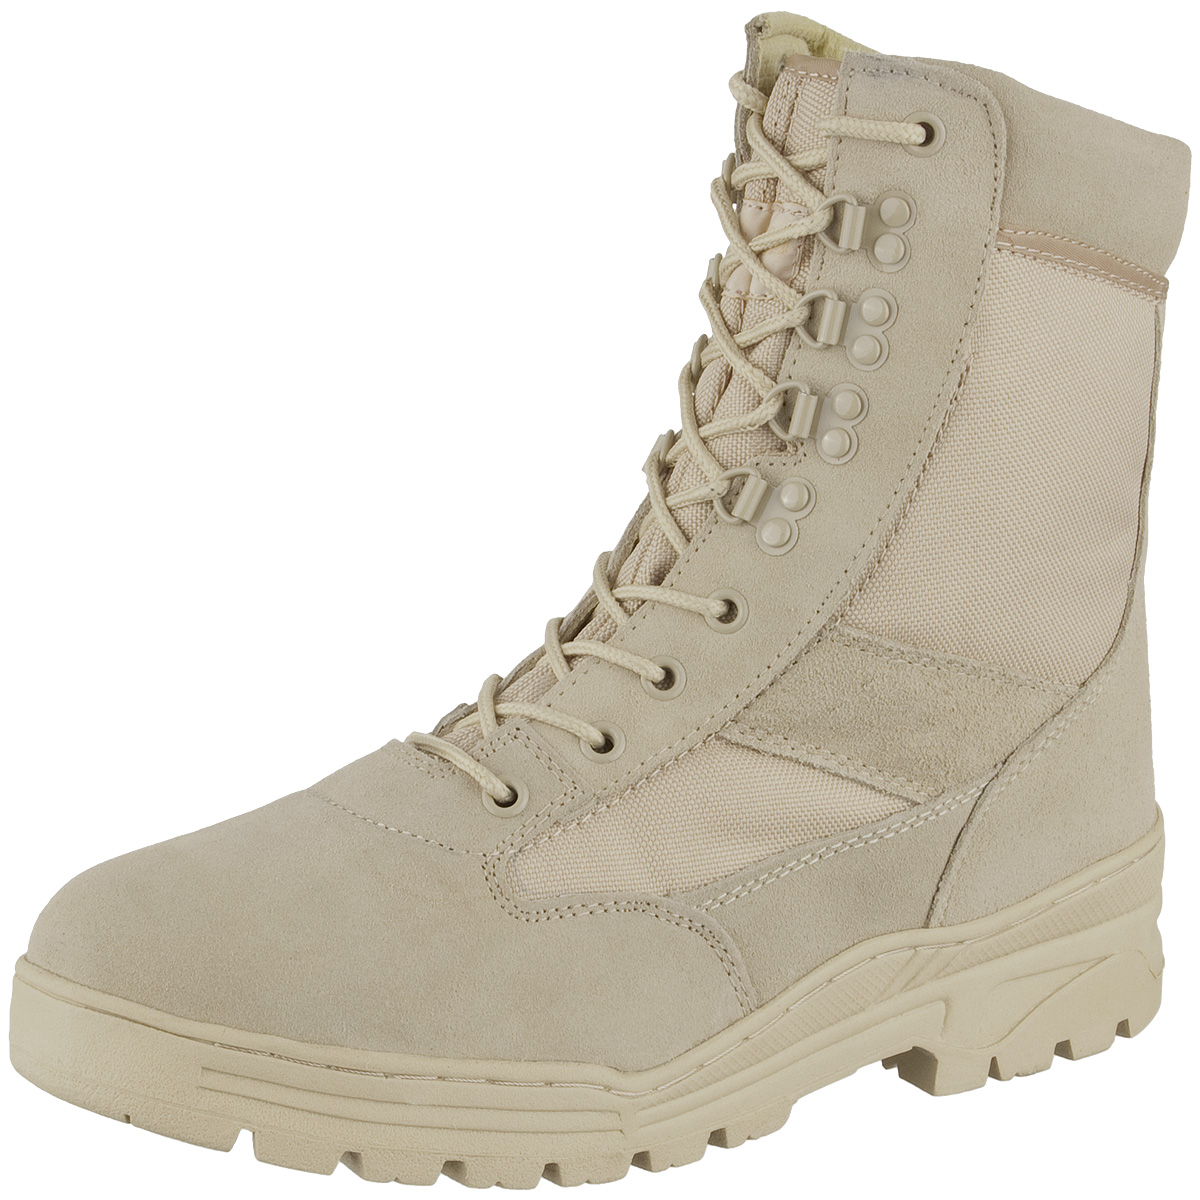 desert patrol suede leather combat boots mens army